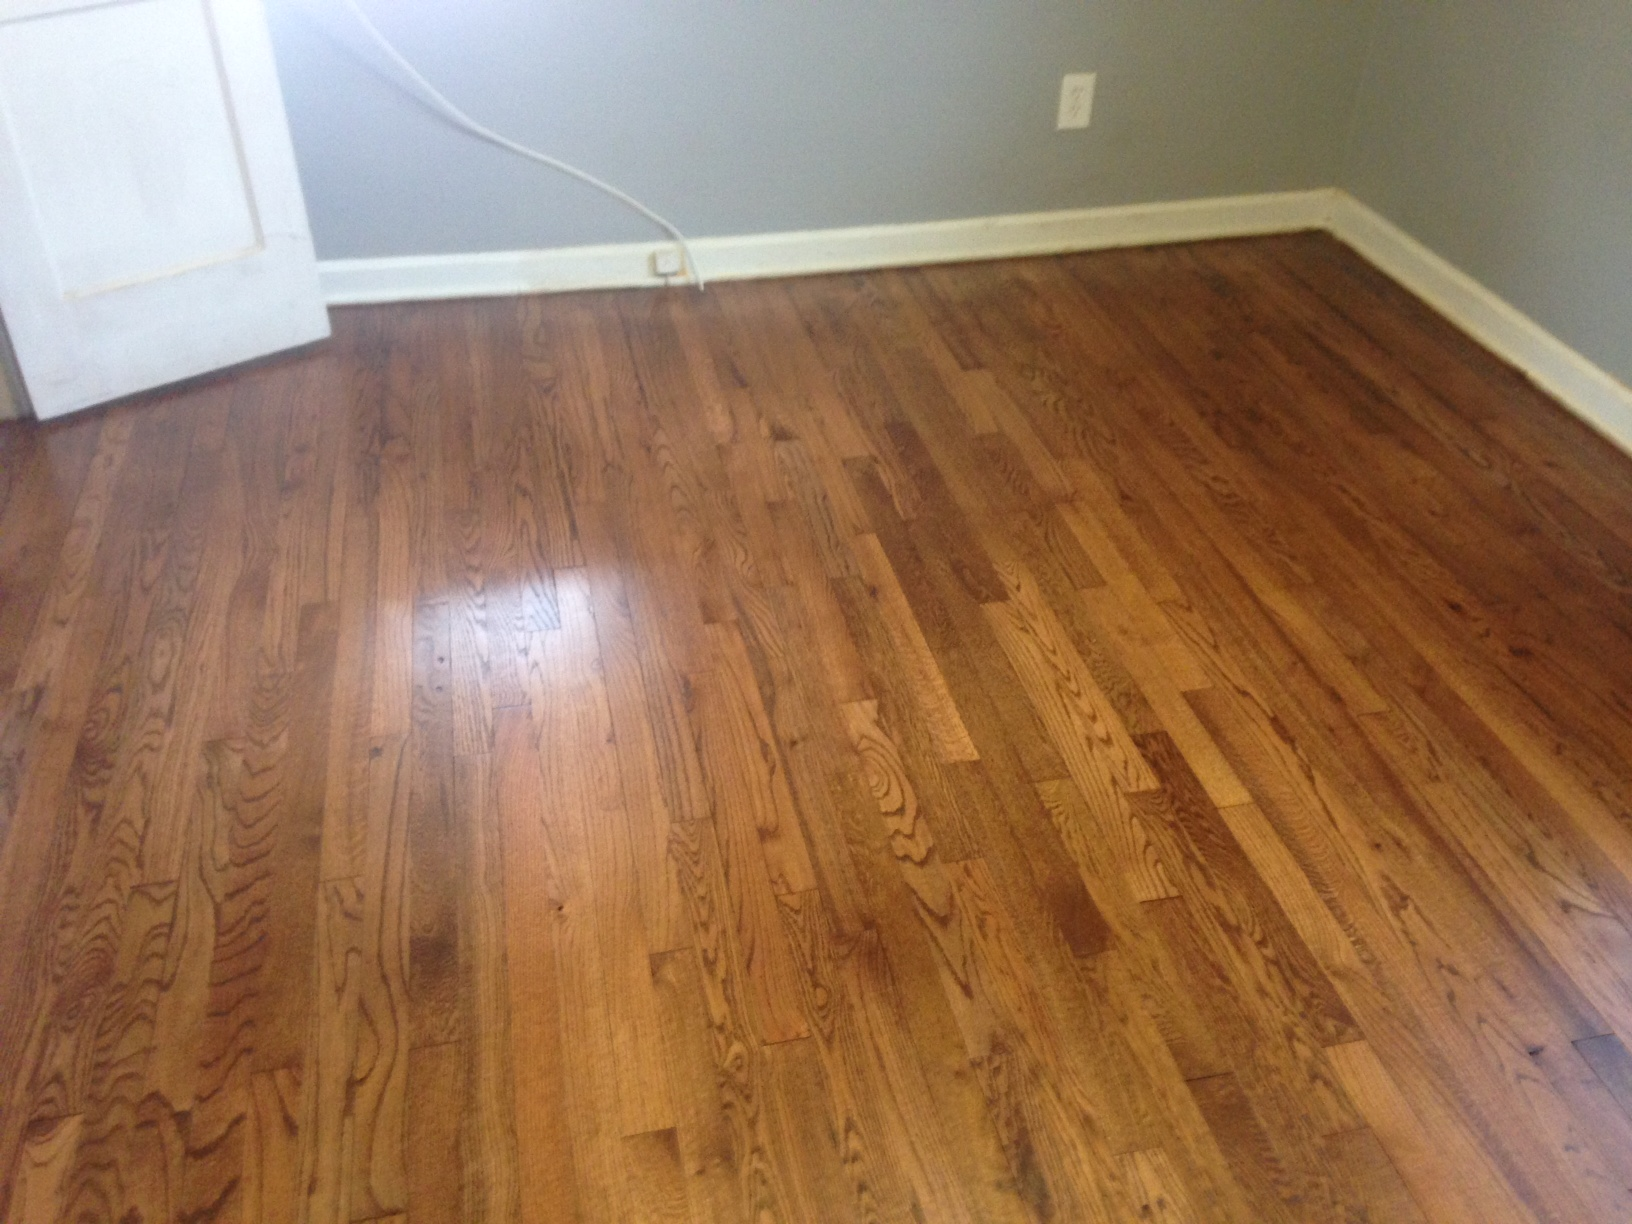 Hardwood floor refinishing jacksonville fl meze blog for Hardwood floors jacksonville fl